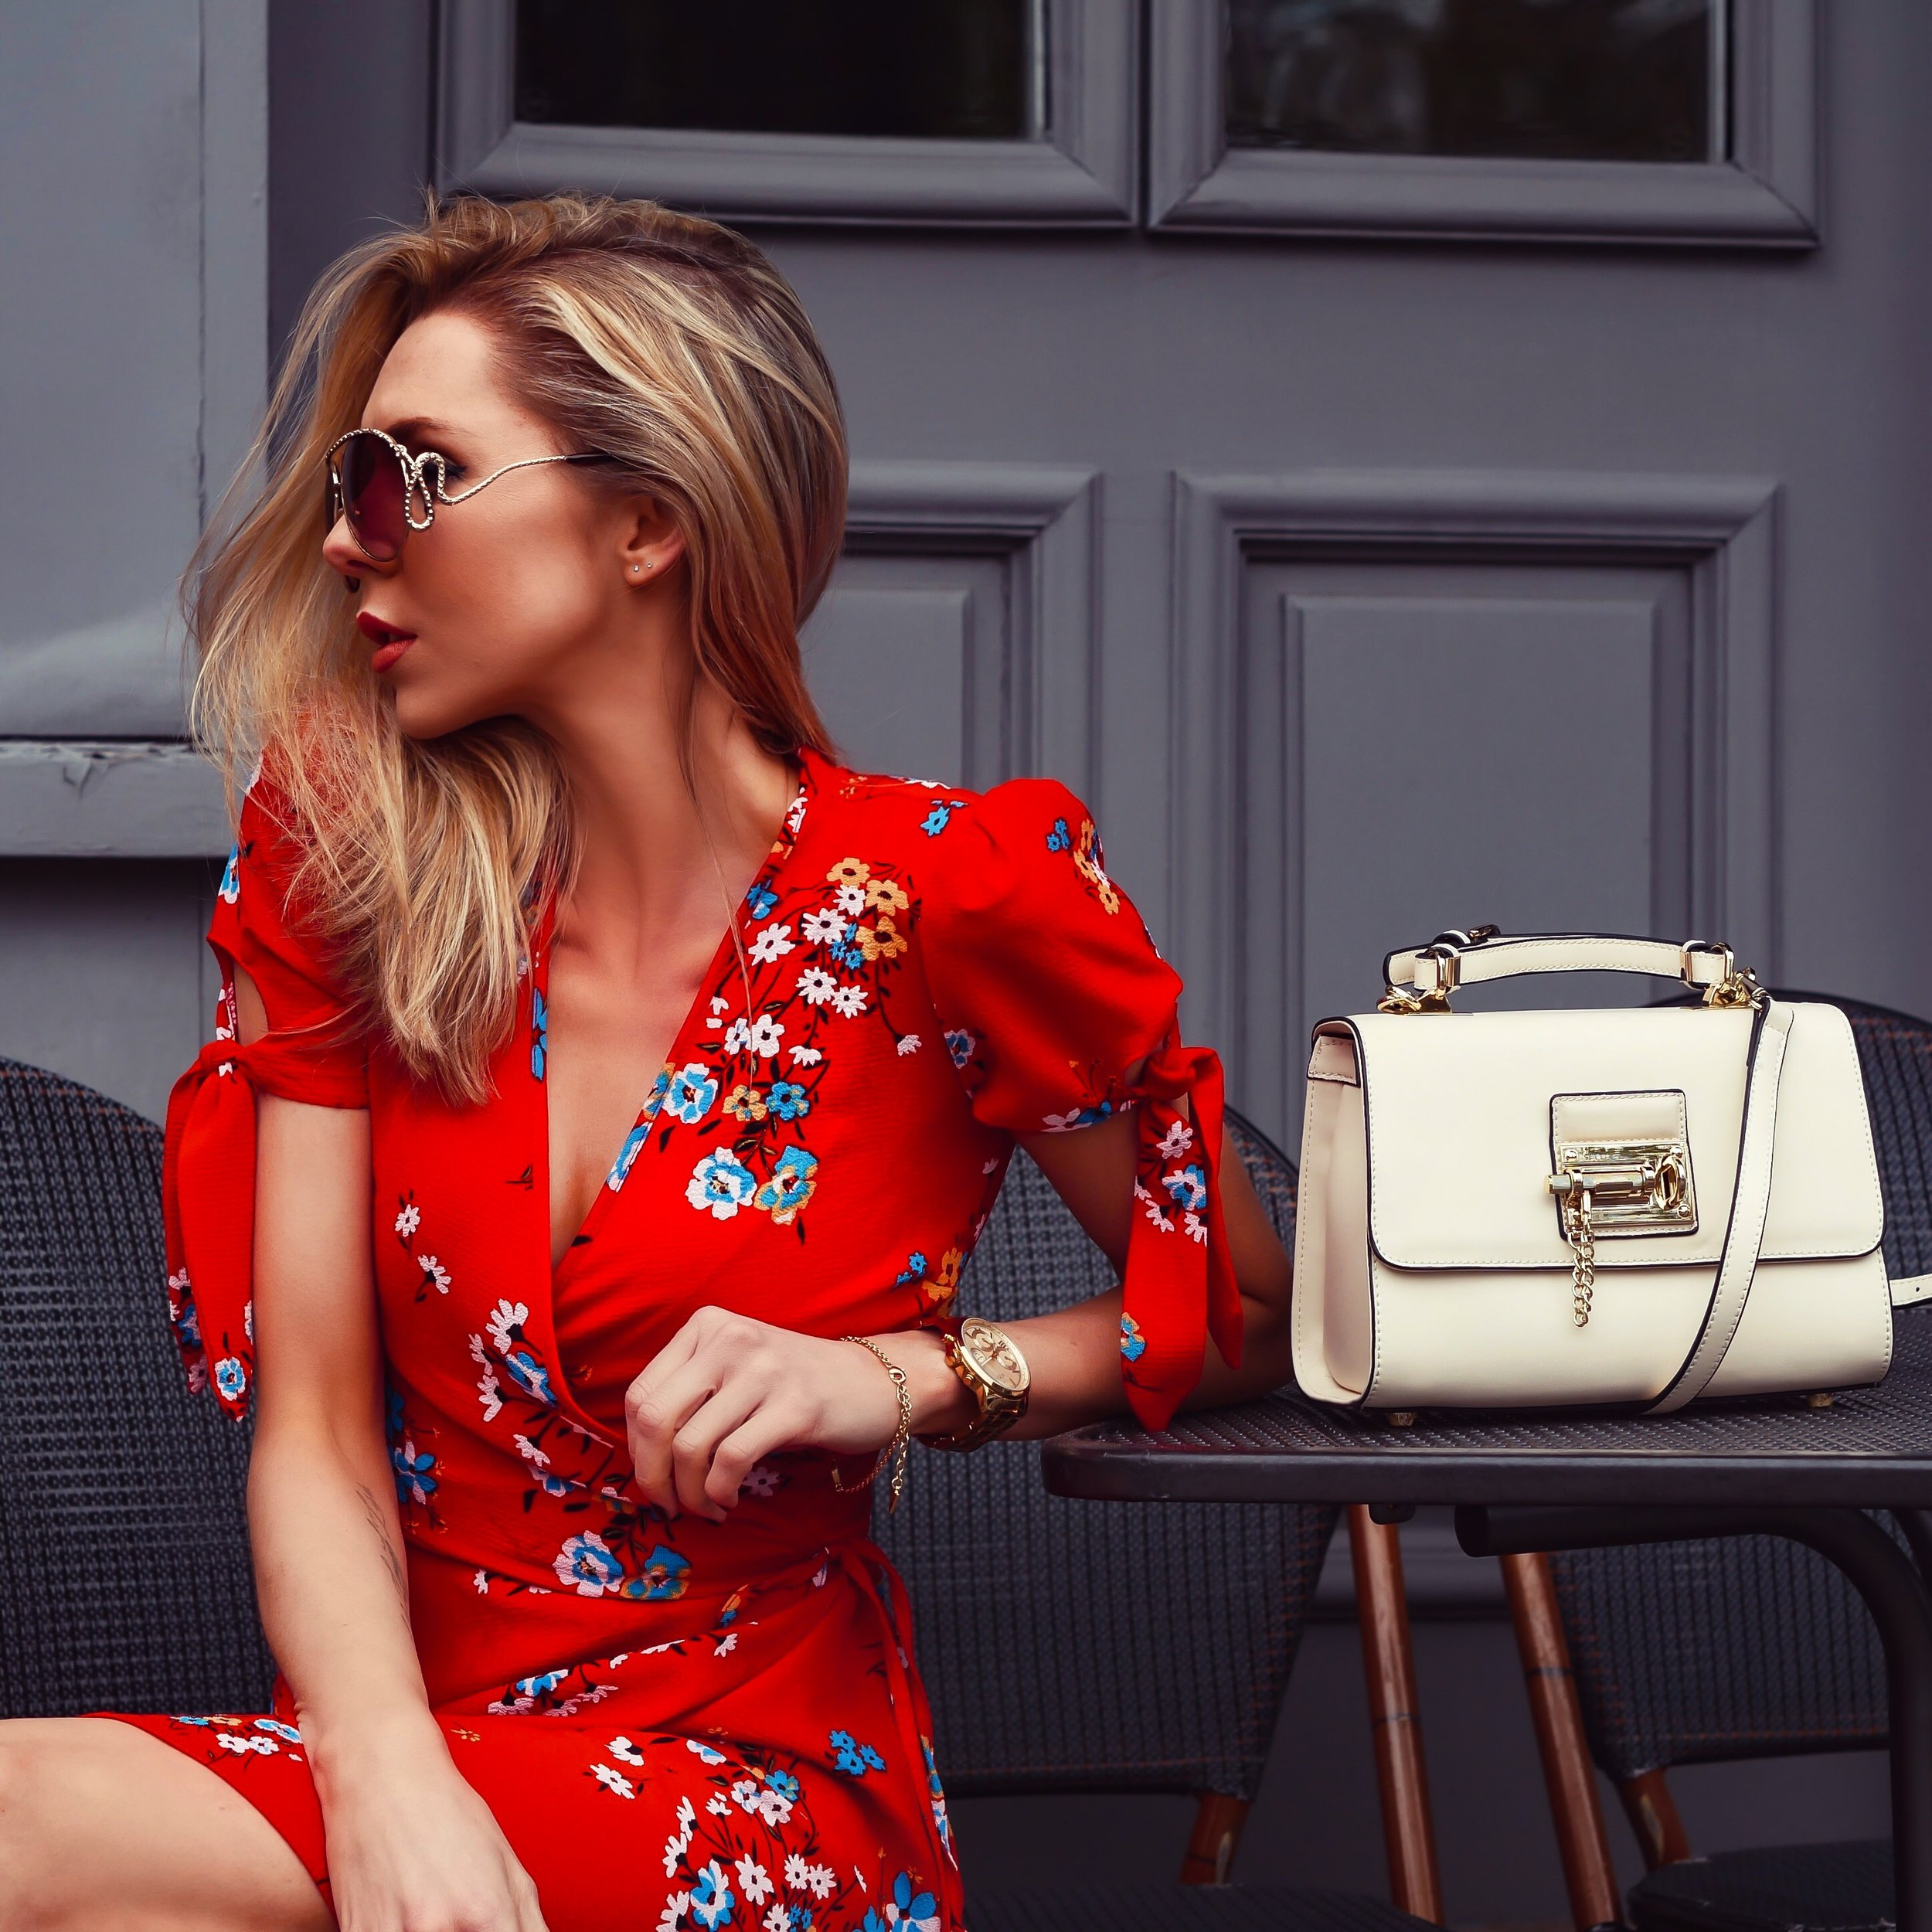 haul, affordable fashion, streetstyle, inspiration, what to wear, fashion, lookbook, style, fashion blogger, laura blair, youtuber, london fashion girl, debenhams, red, jasper conran